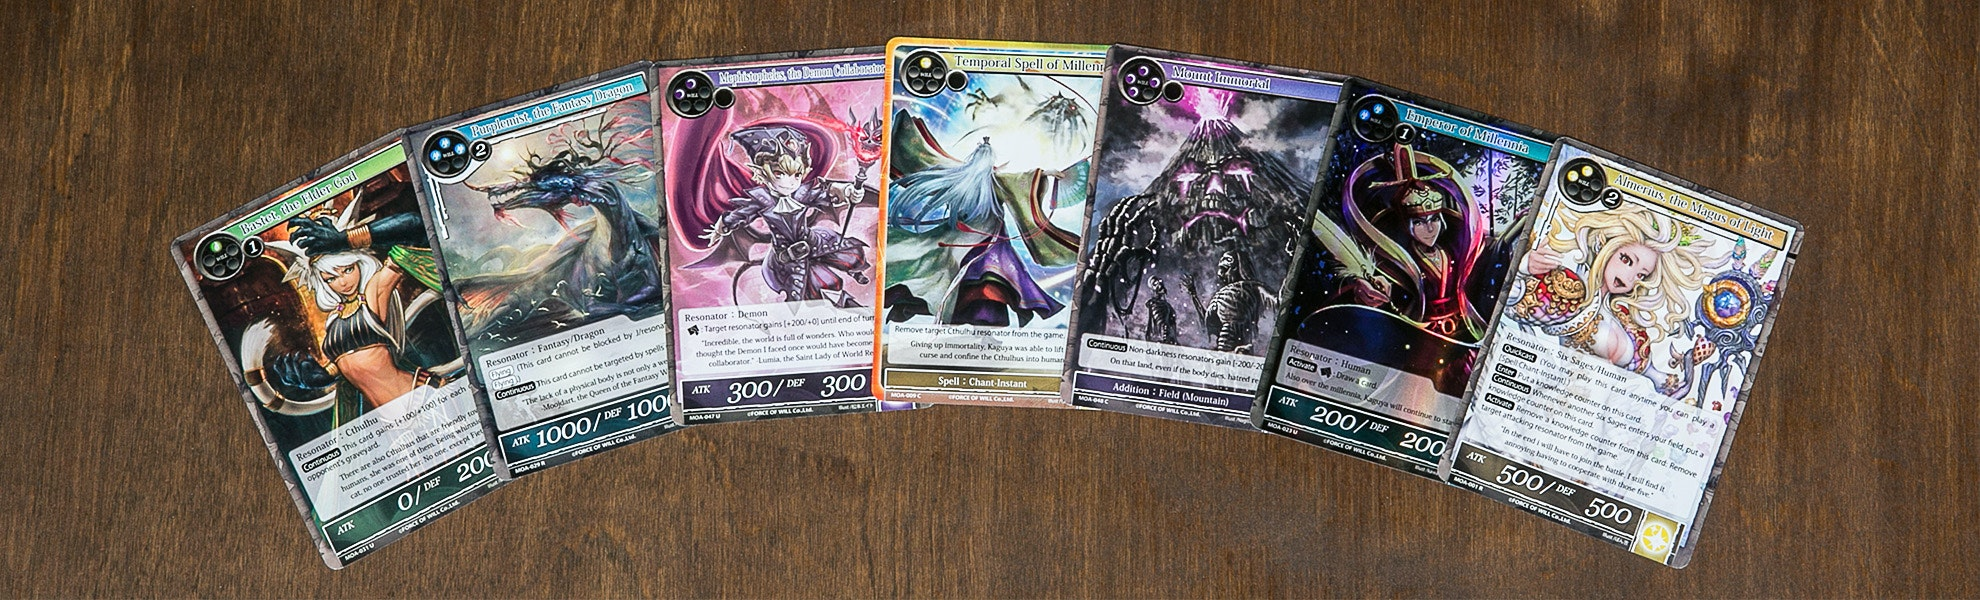 Force Of Will: Millennia of Ages Booster Box